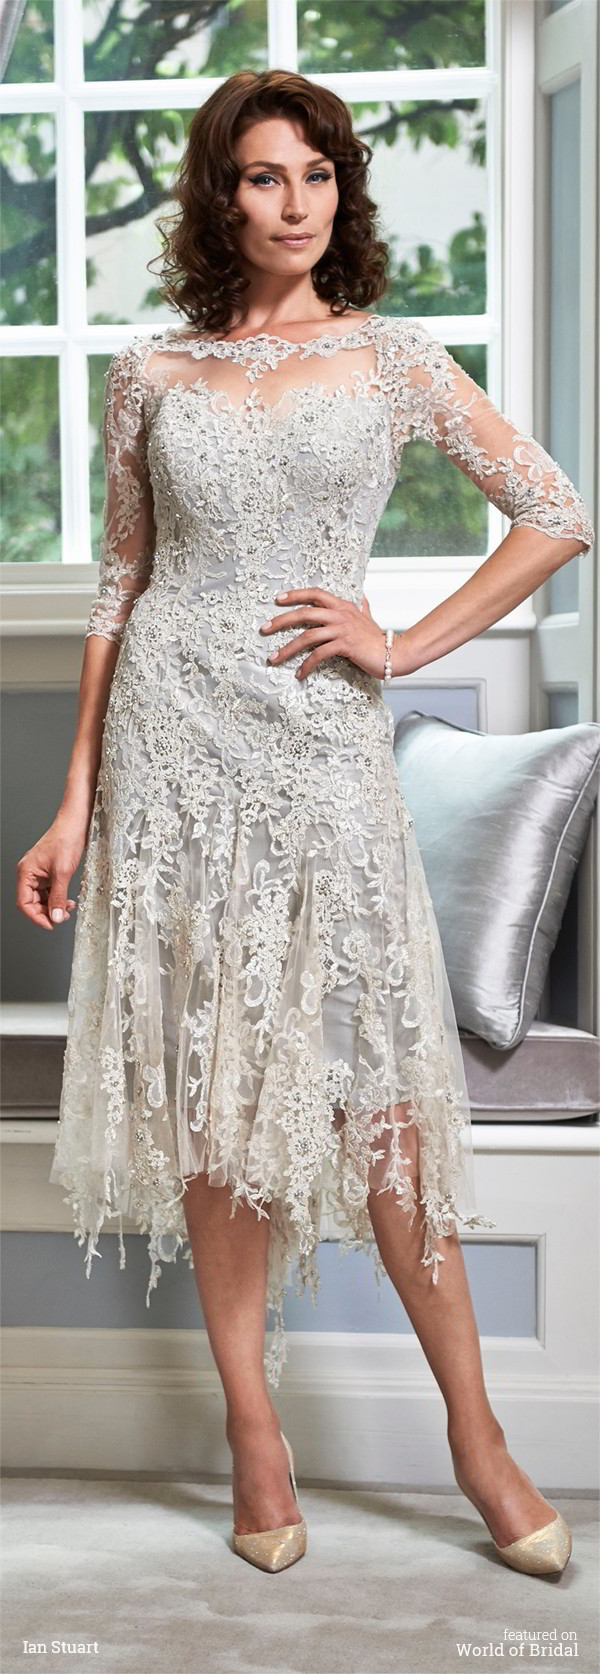 Ian stuart 2016 mother bride dresses world of bridal for Wedding dresses for mother of bride